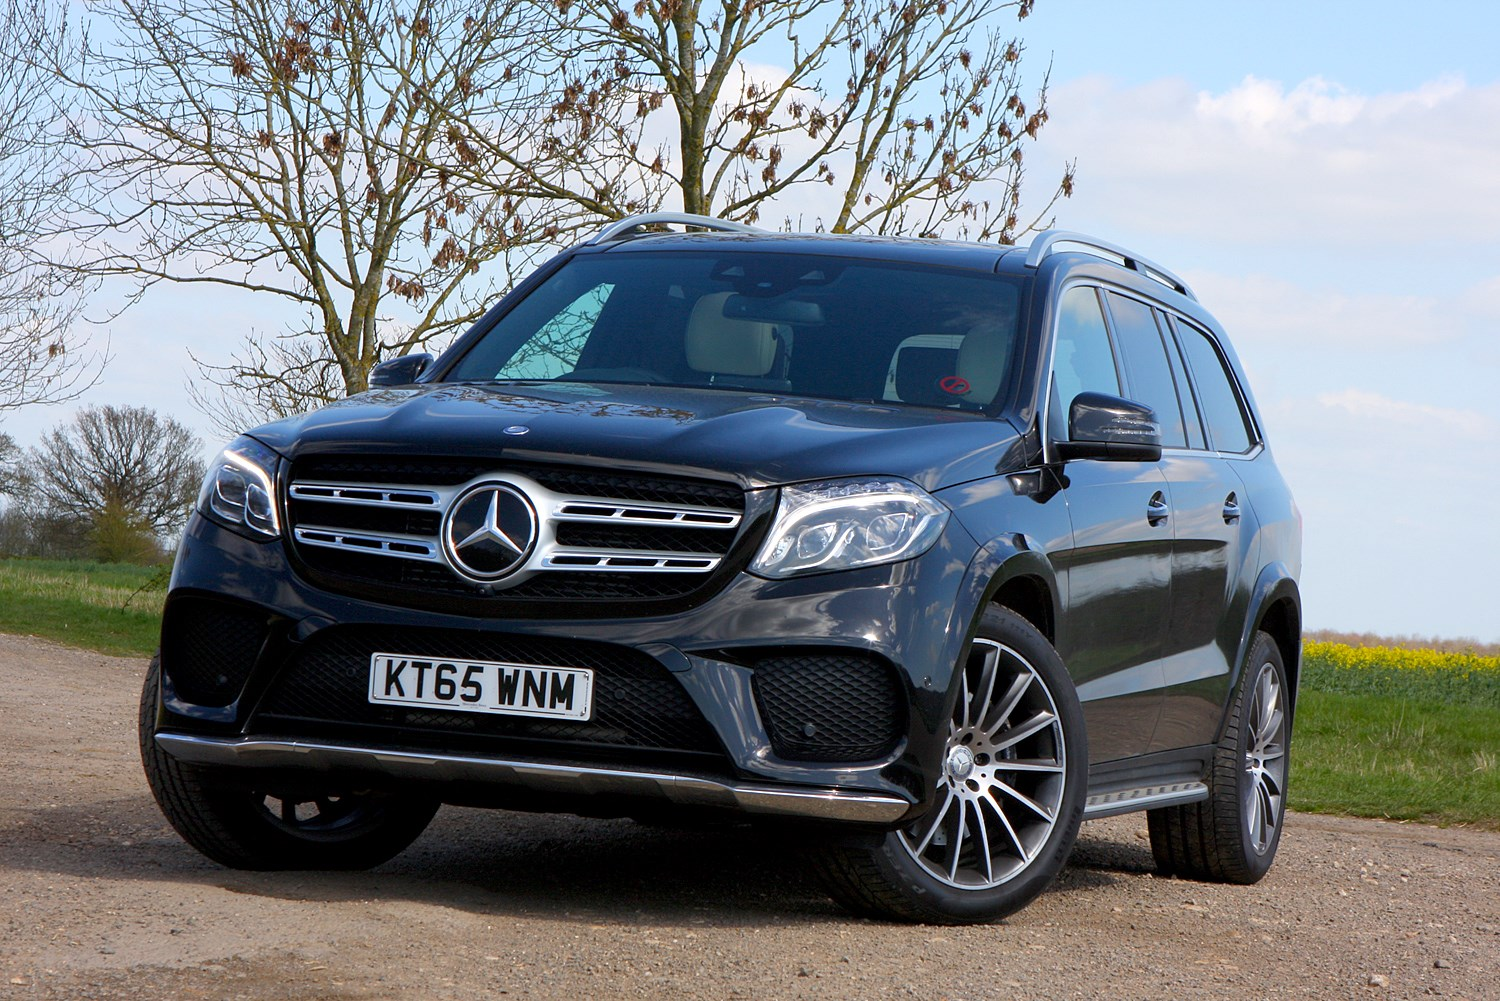 Mercedes benz gls class suv review 2016 parkers for Gls mercedes benz suv